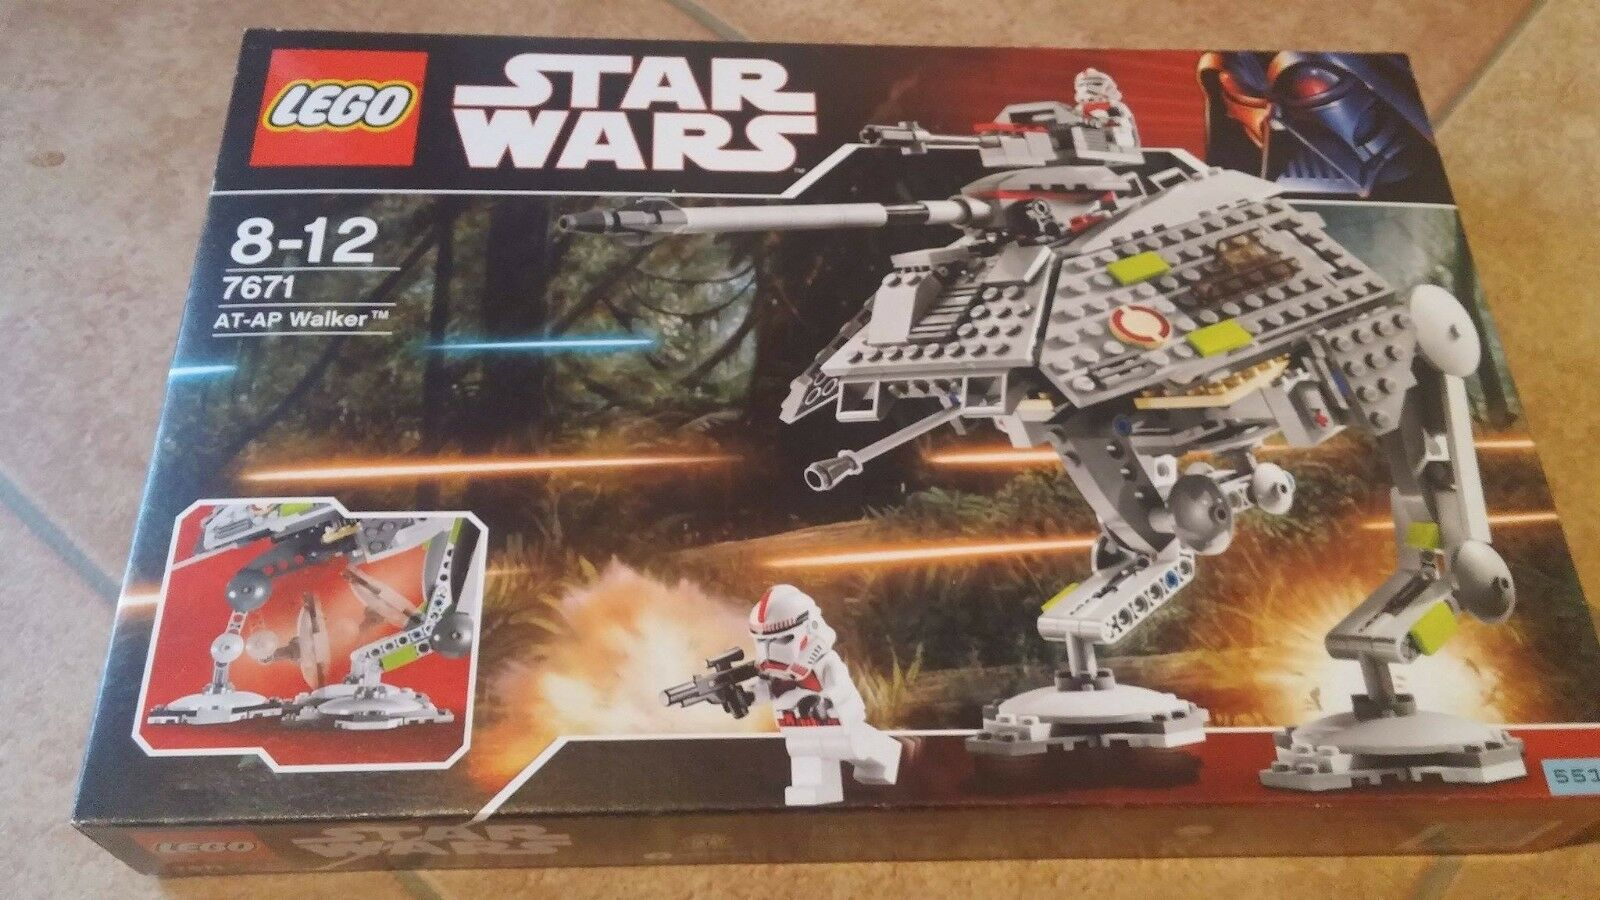 LEGO Star Wars AT-AP Walker (7671) Neu und OVP